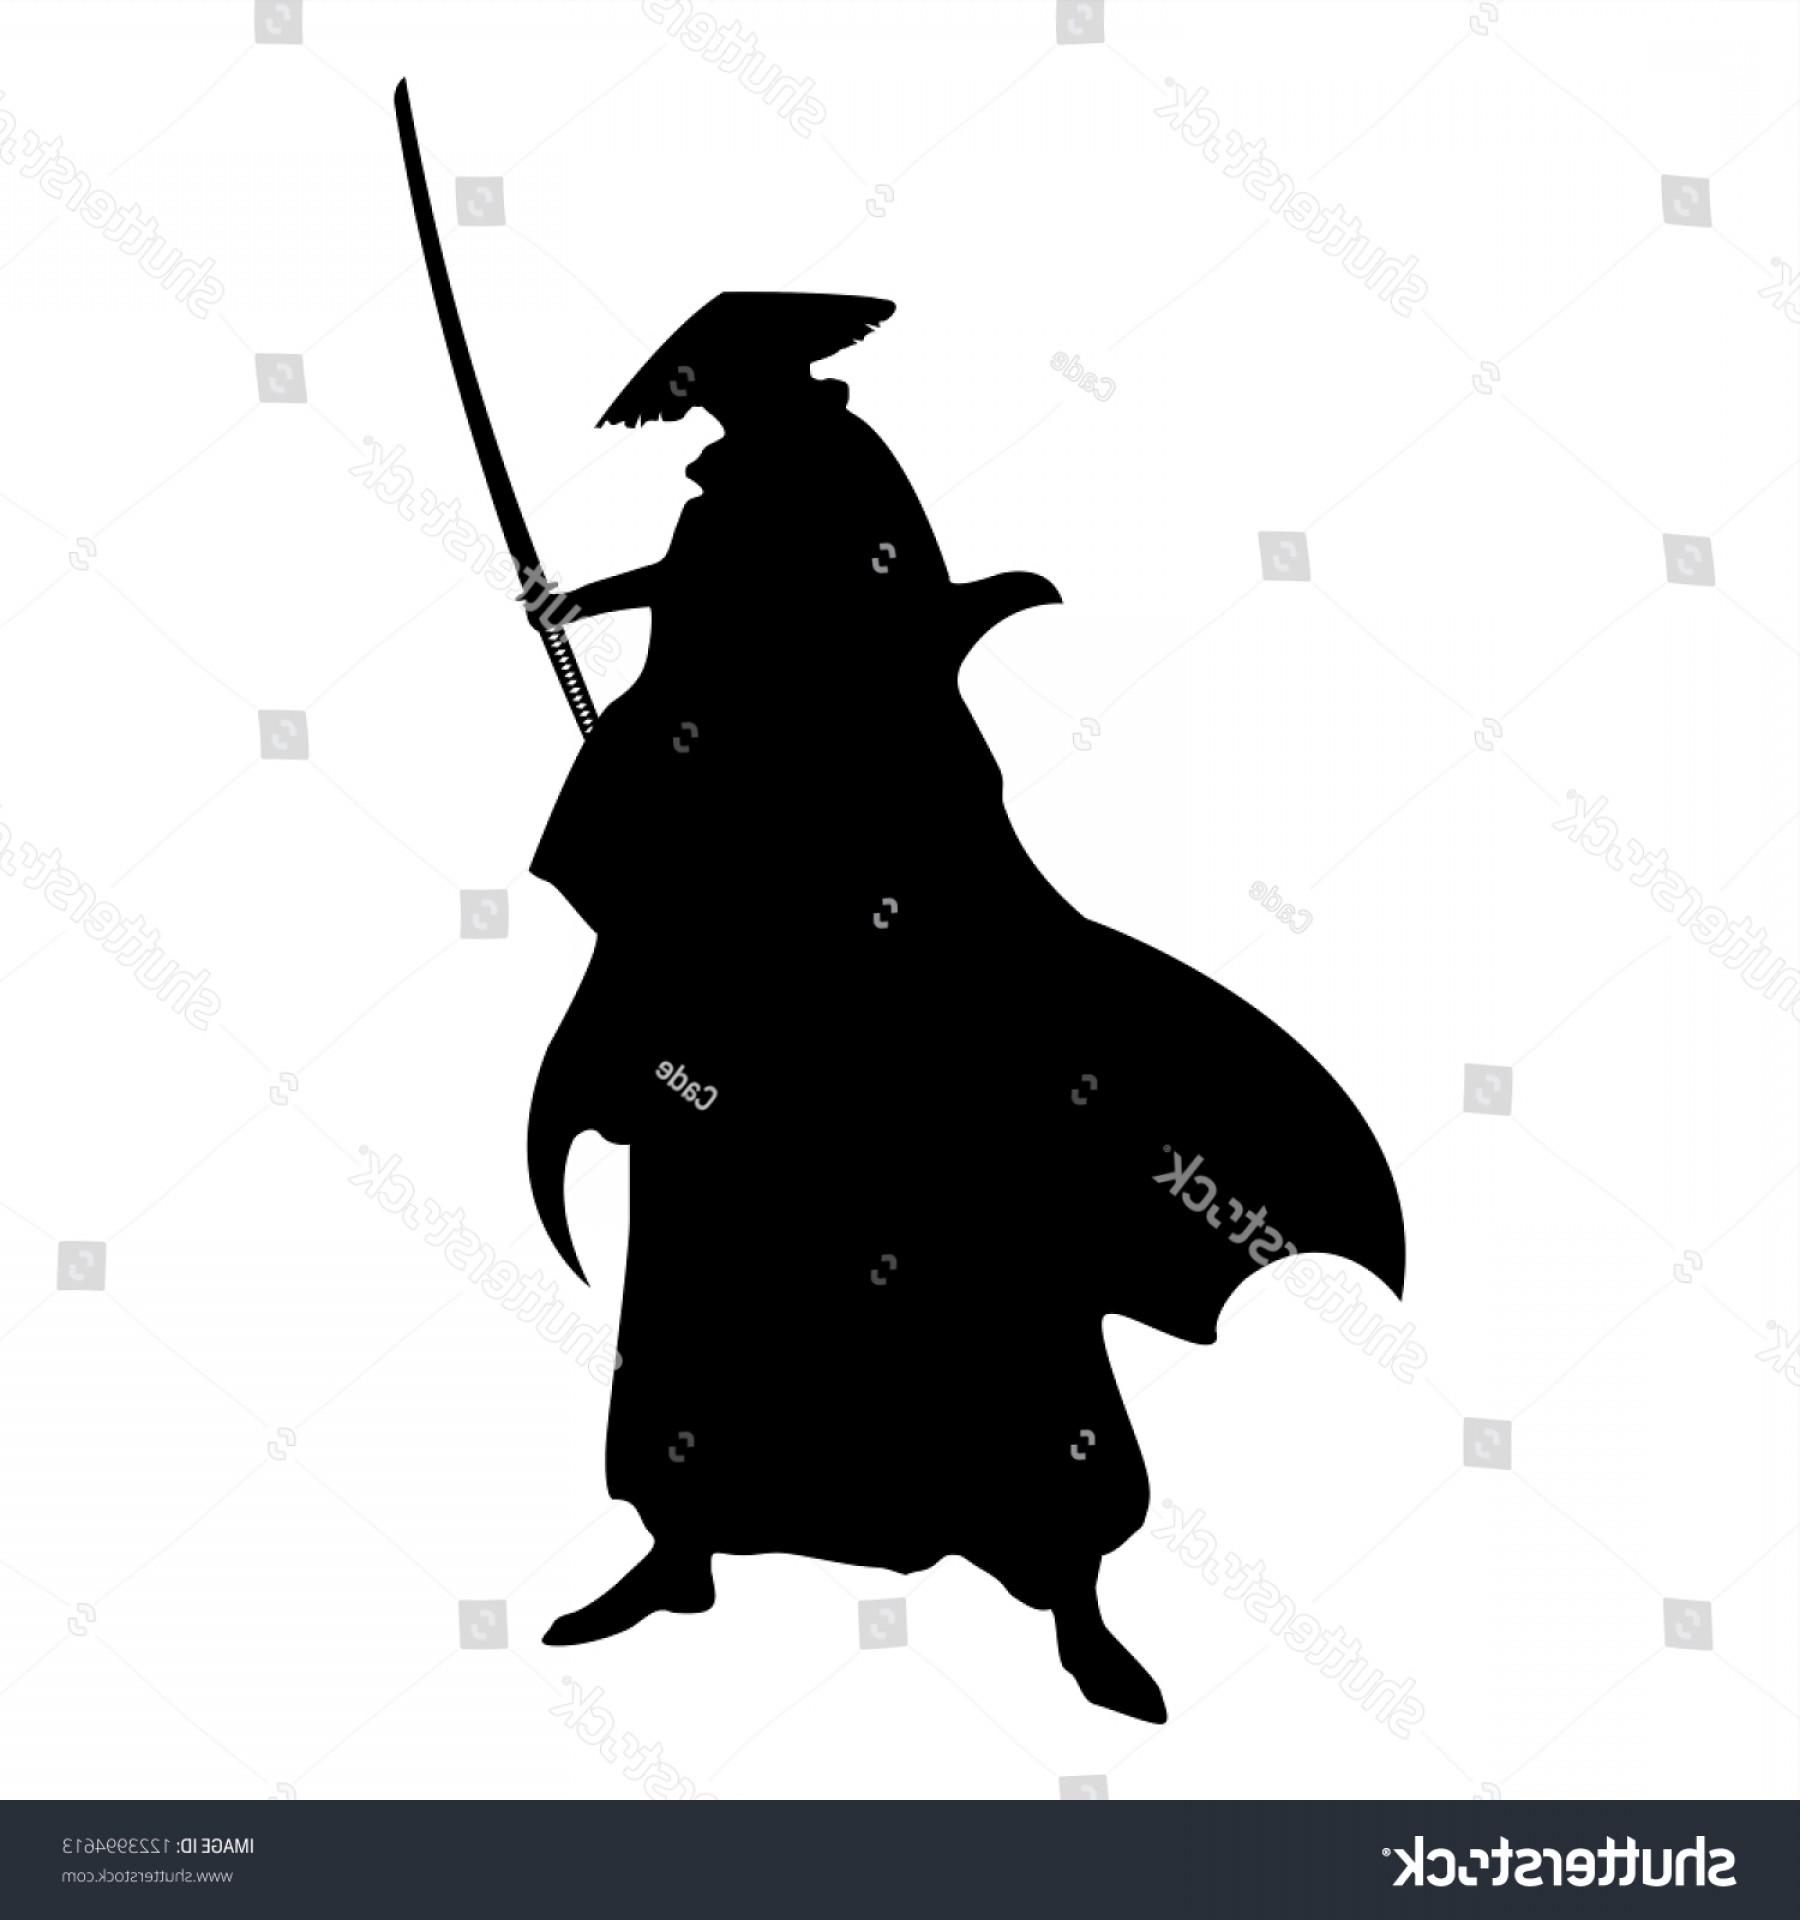 Windows Phone Vector Samurai: Samurai Silhouette Warrior Sword Ninja Japanese